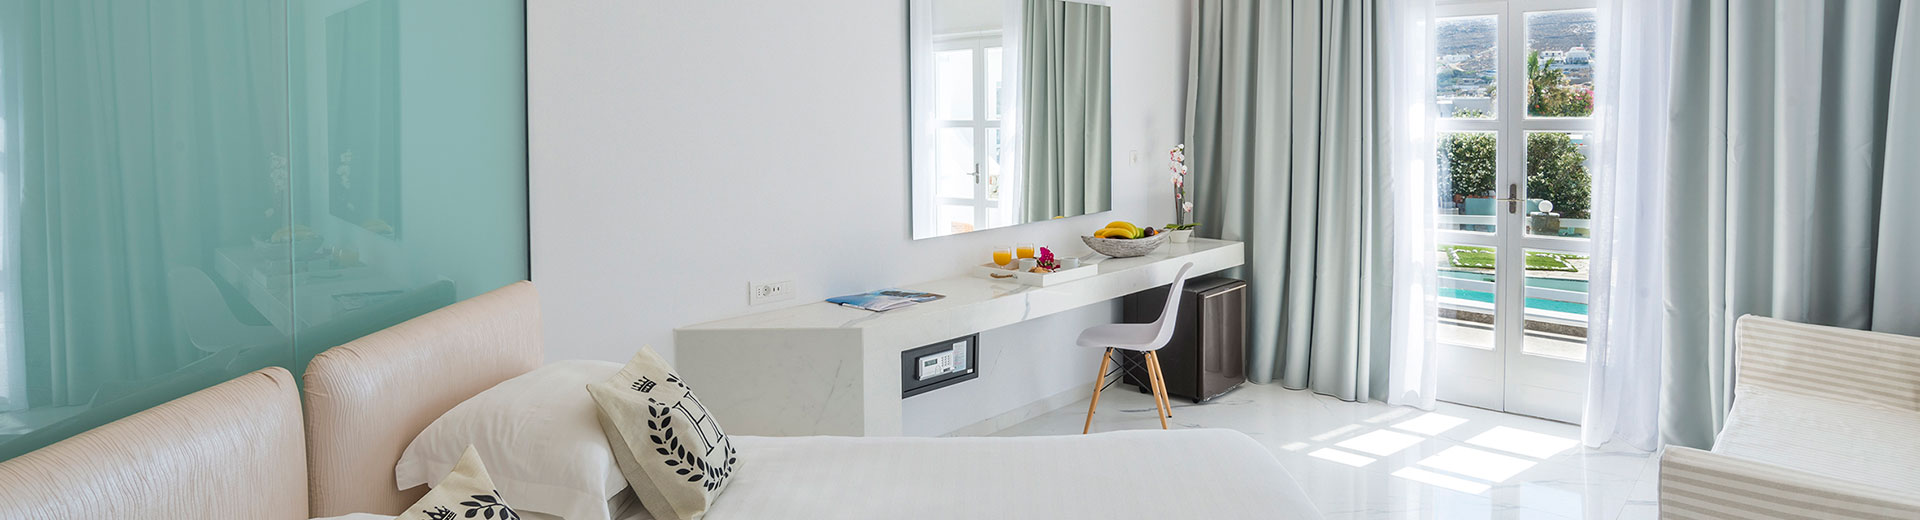 Prestige Junior Suite With Sharing Pool View Rooms In Mykonos | Dionysos 4  Star Hotel